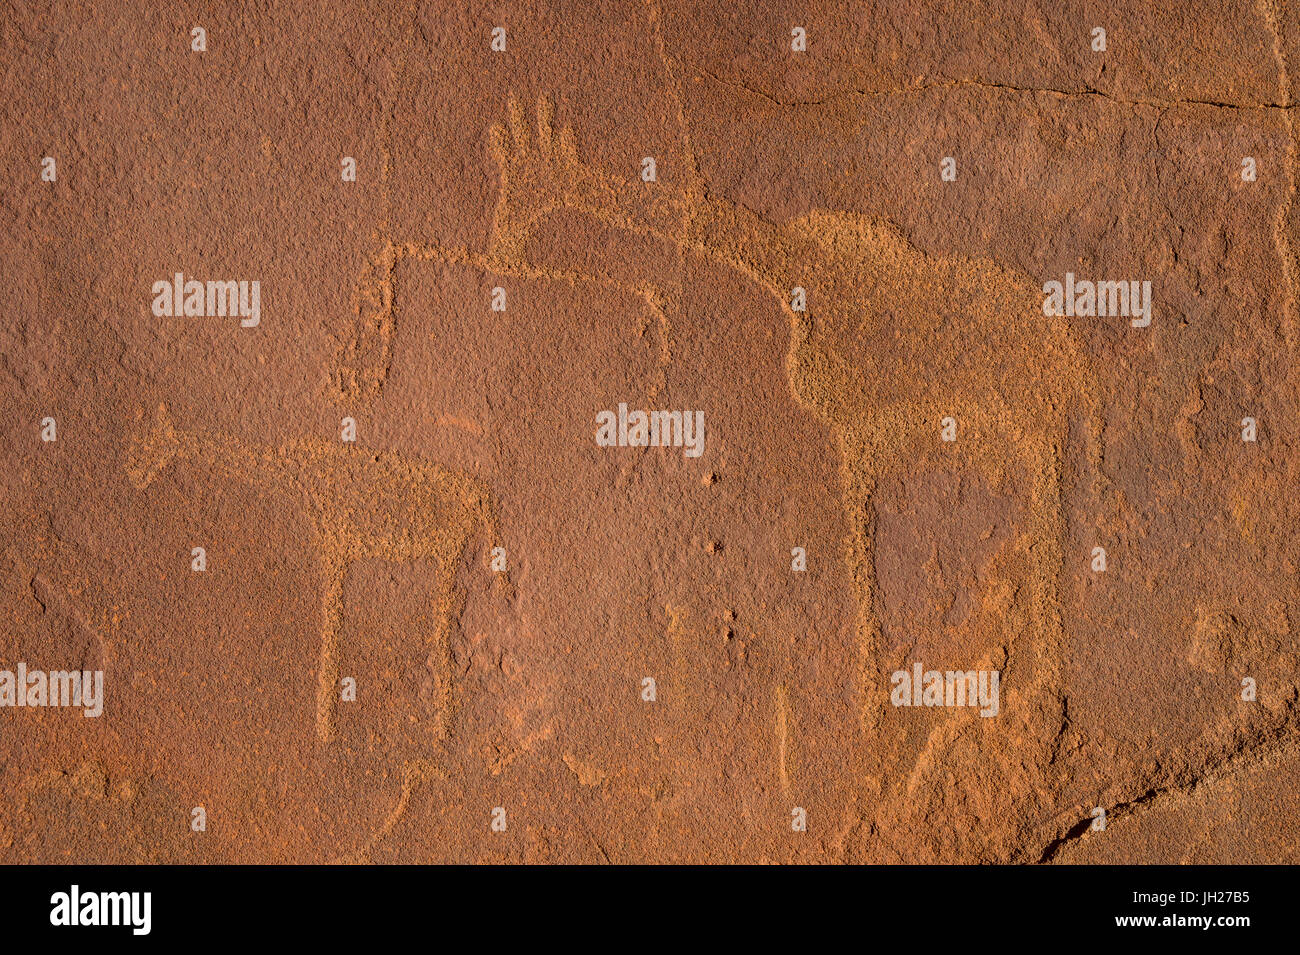 Ancient rock engravings, Twyfelfontein, UNESCO World Heritage Site, Namibia, Africa - Stock Image